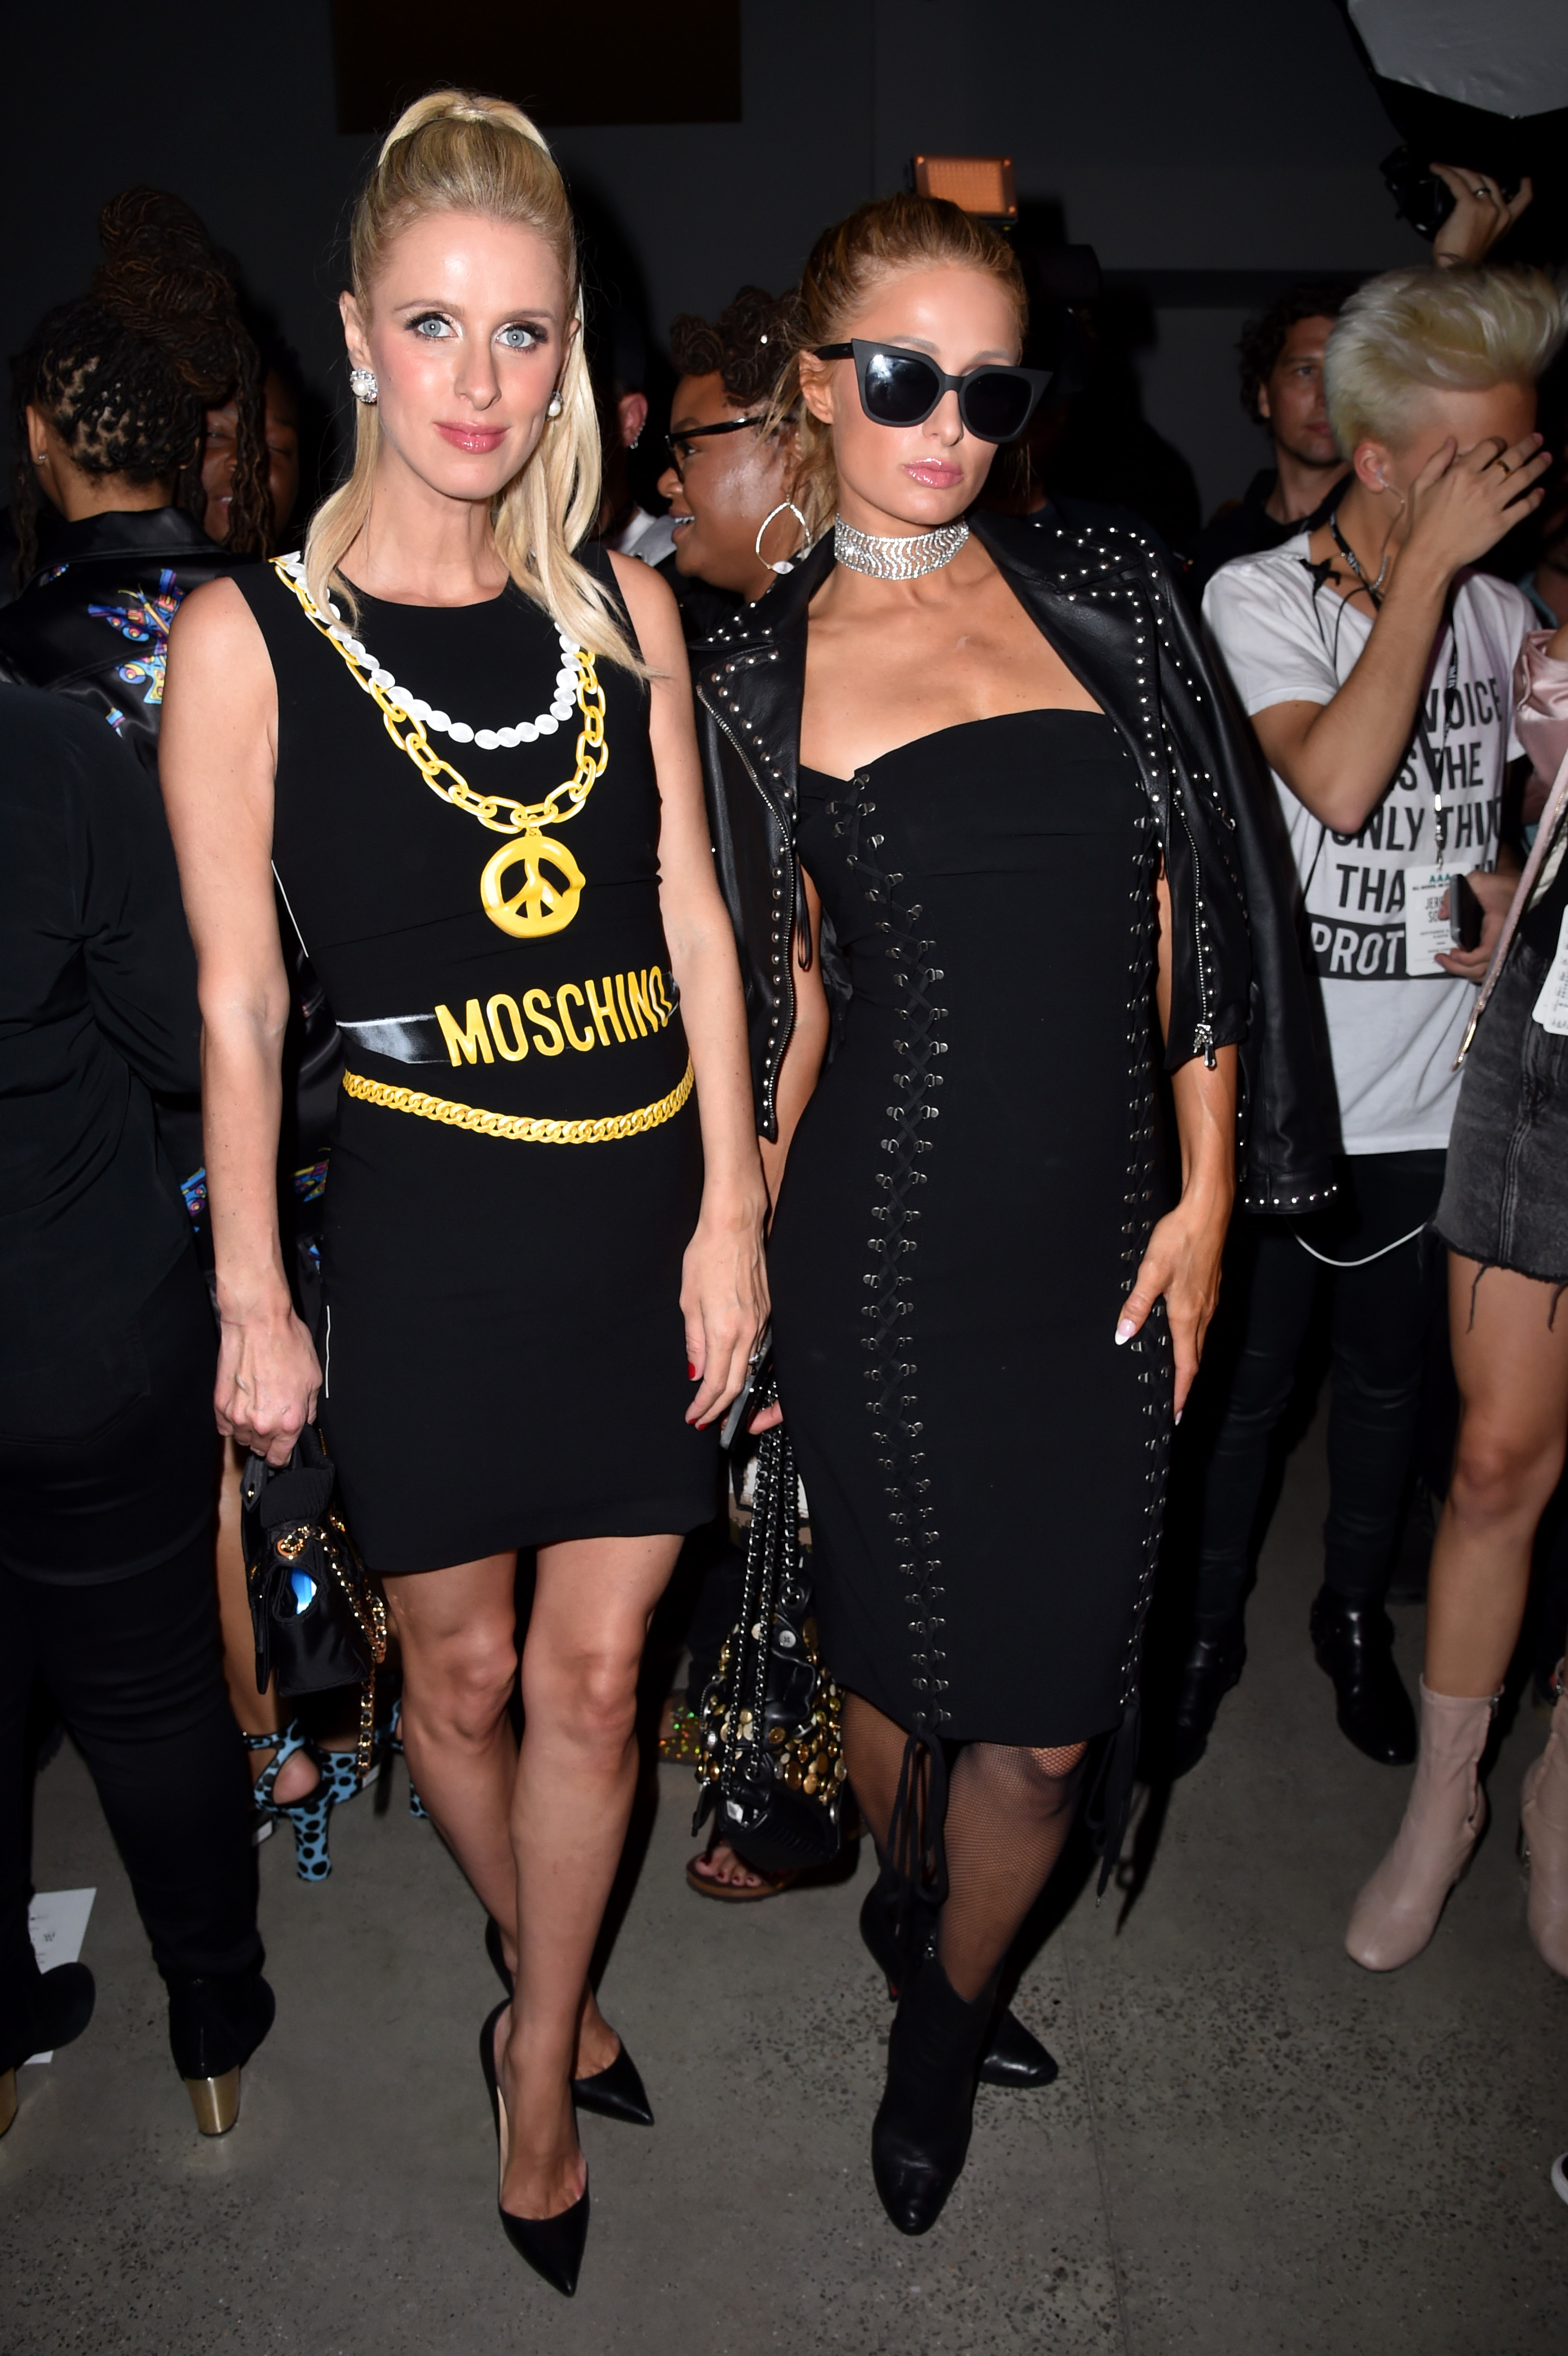 Nicky Hilton and Paris Hilton in the front row